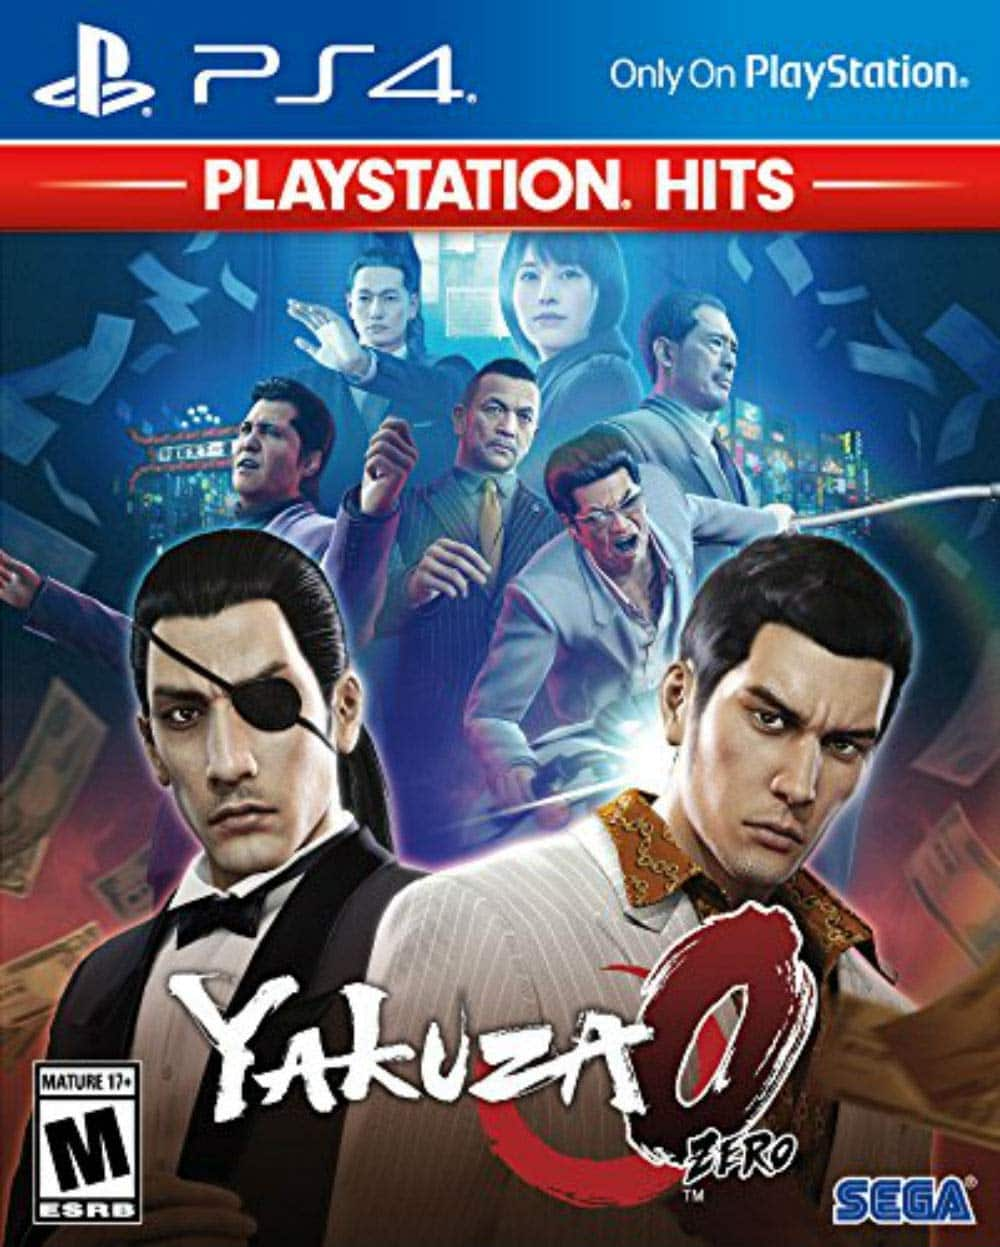 Yakuza 0 (PS4) $13.57 + Free Shipping w/ Prime or $25+ orders @ Amazon